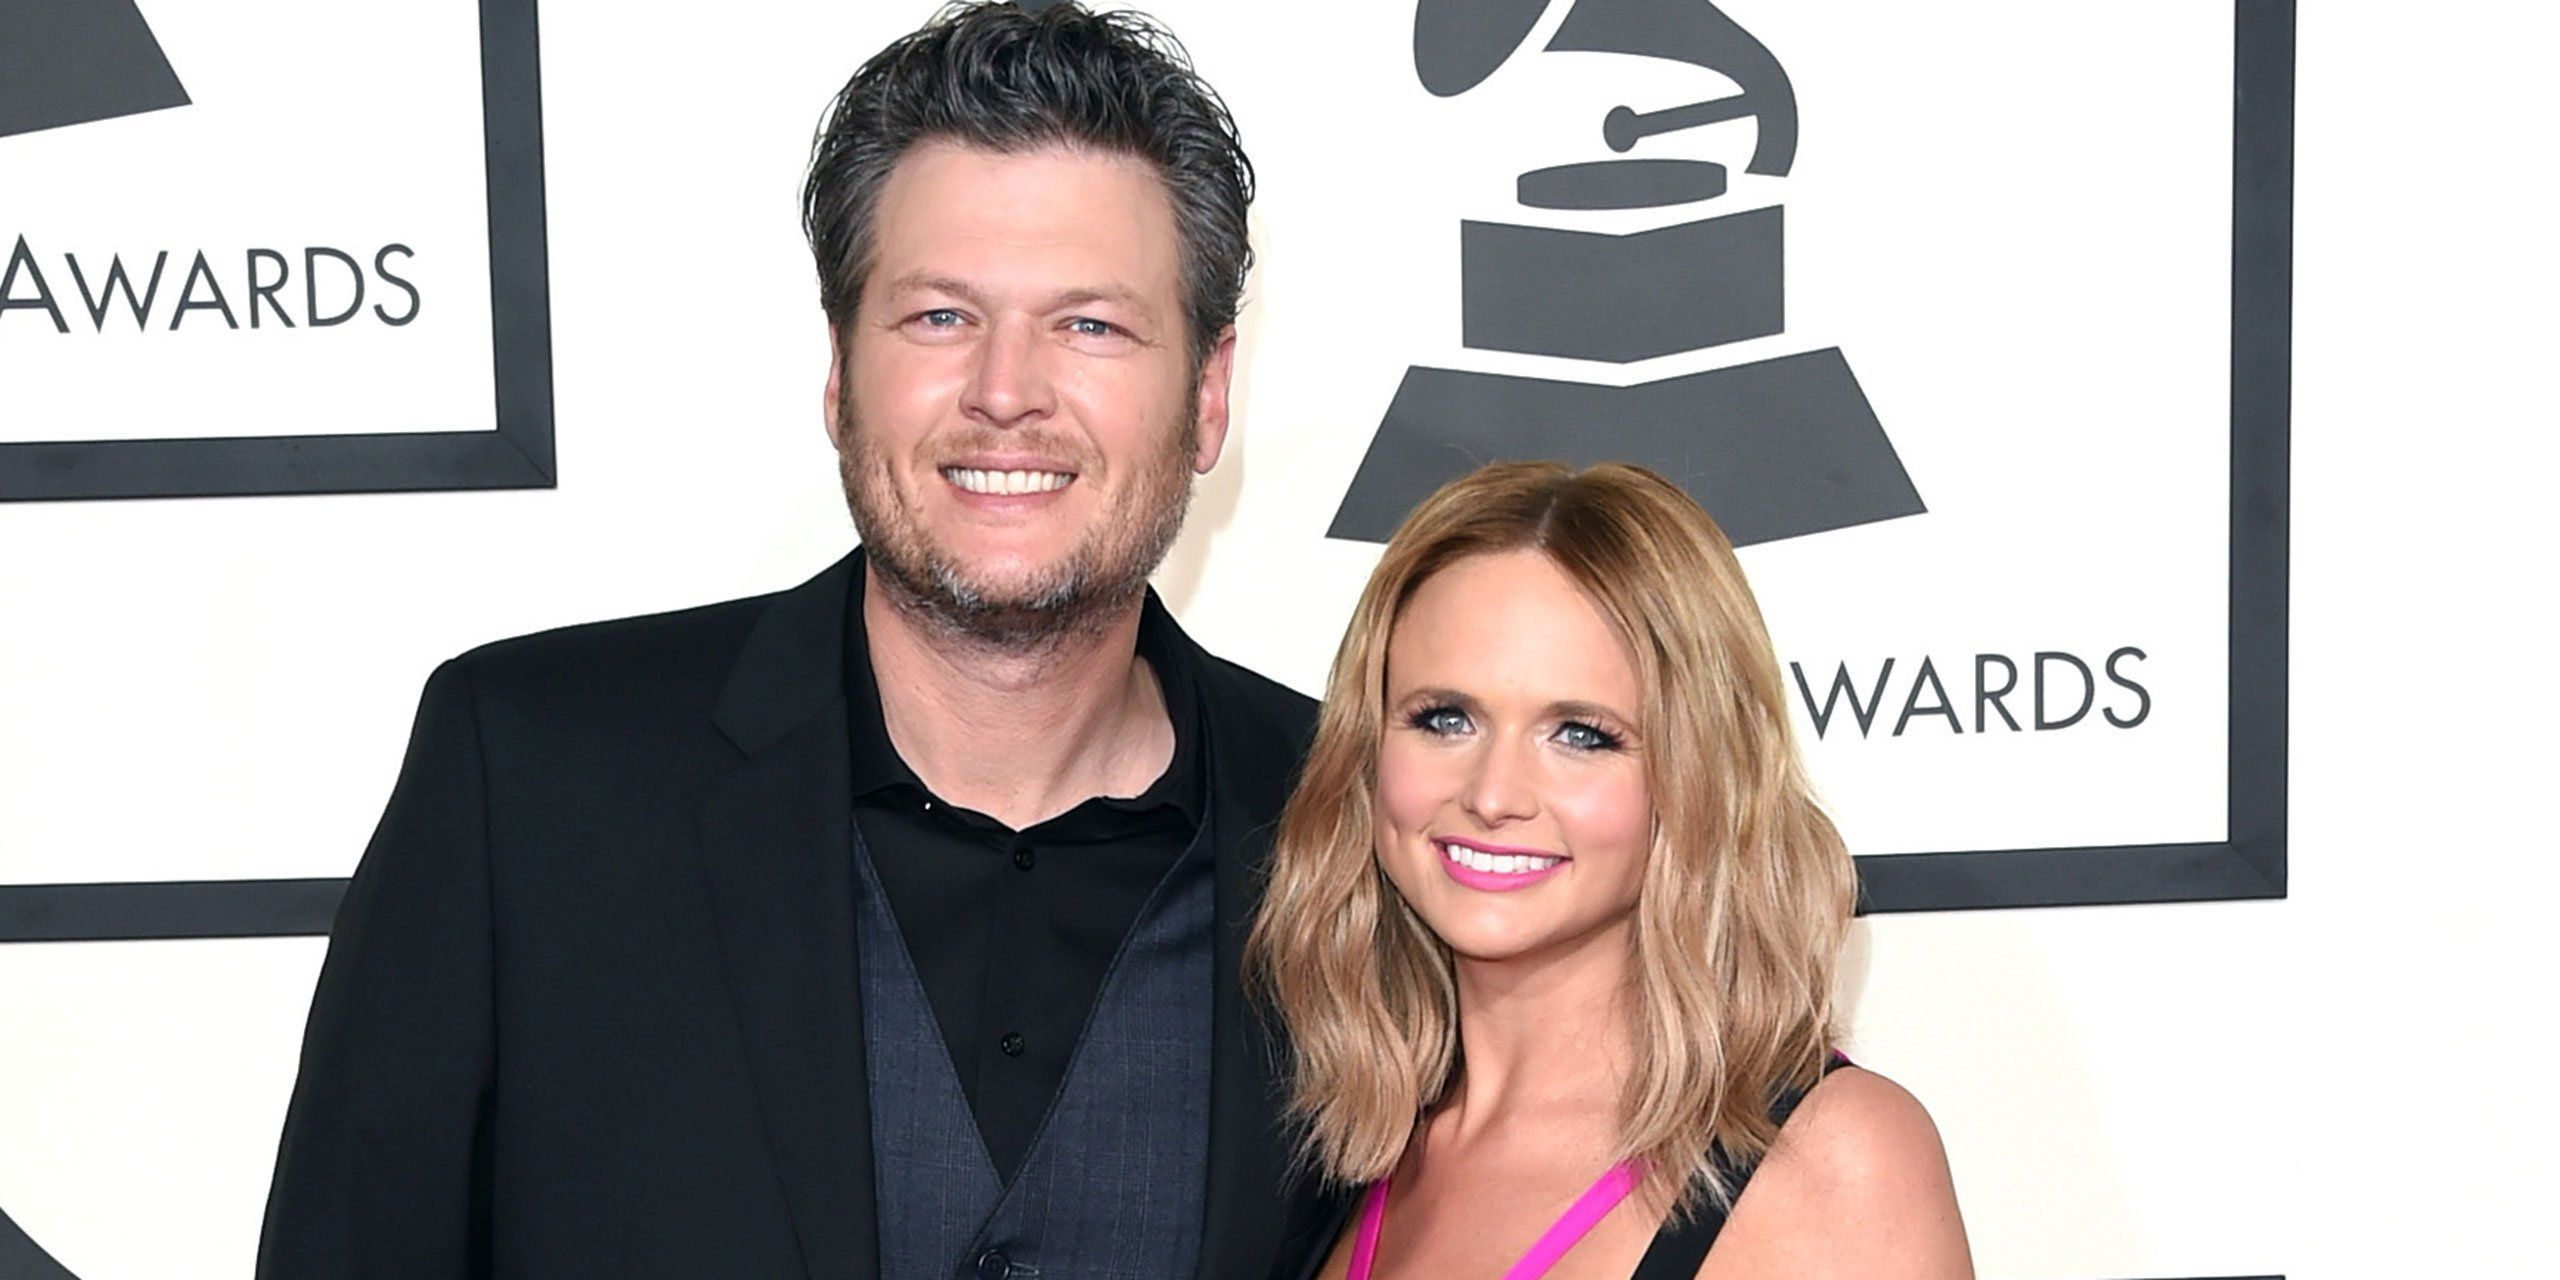 Blake Shelton And Miranda Lambert S Divorce A Wake Up Call For Sensitivity Blake Shelton And Miranda Miranda Lambert Divorce Blake Shelton Miranda Lambert